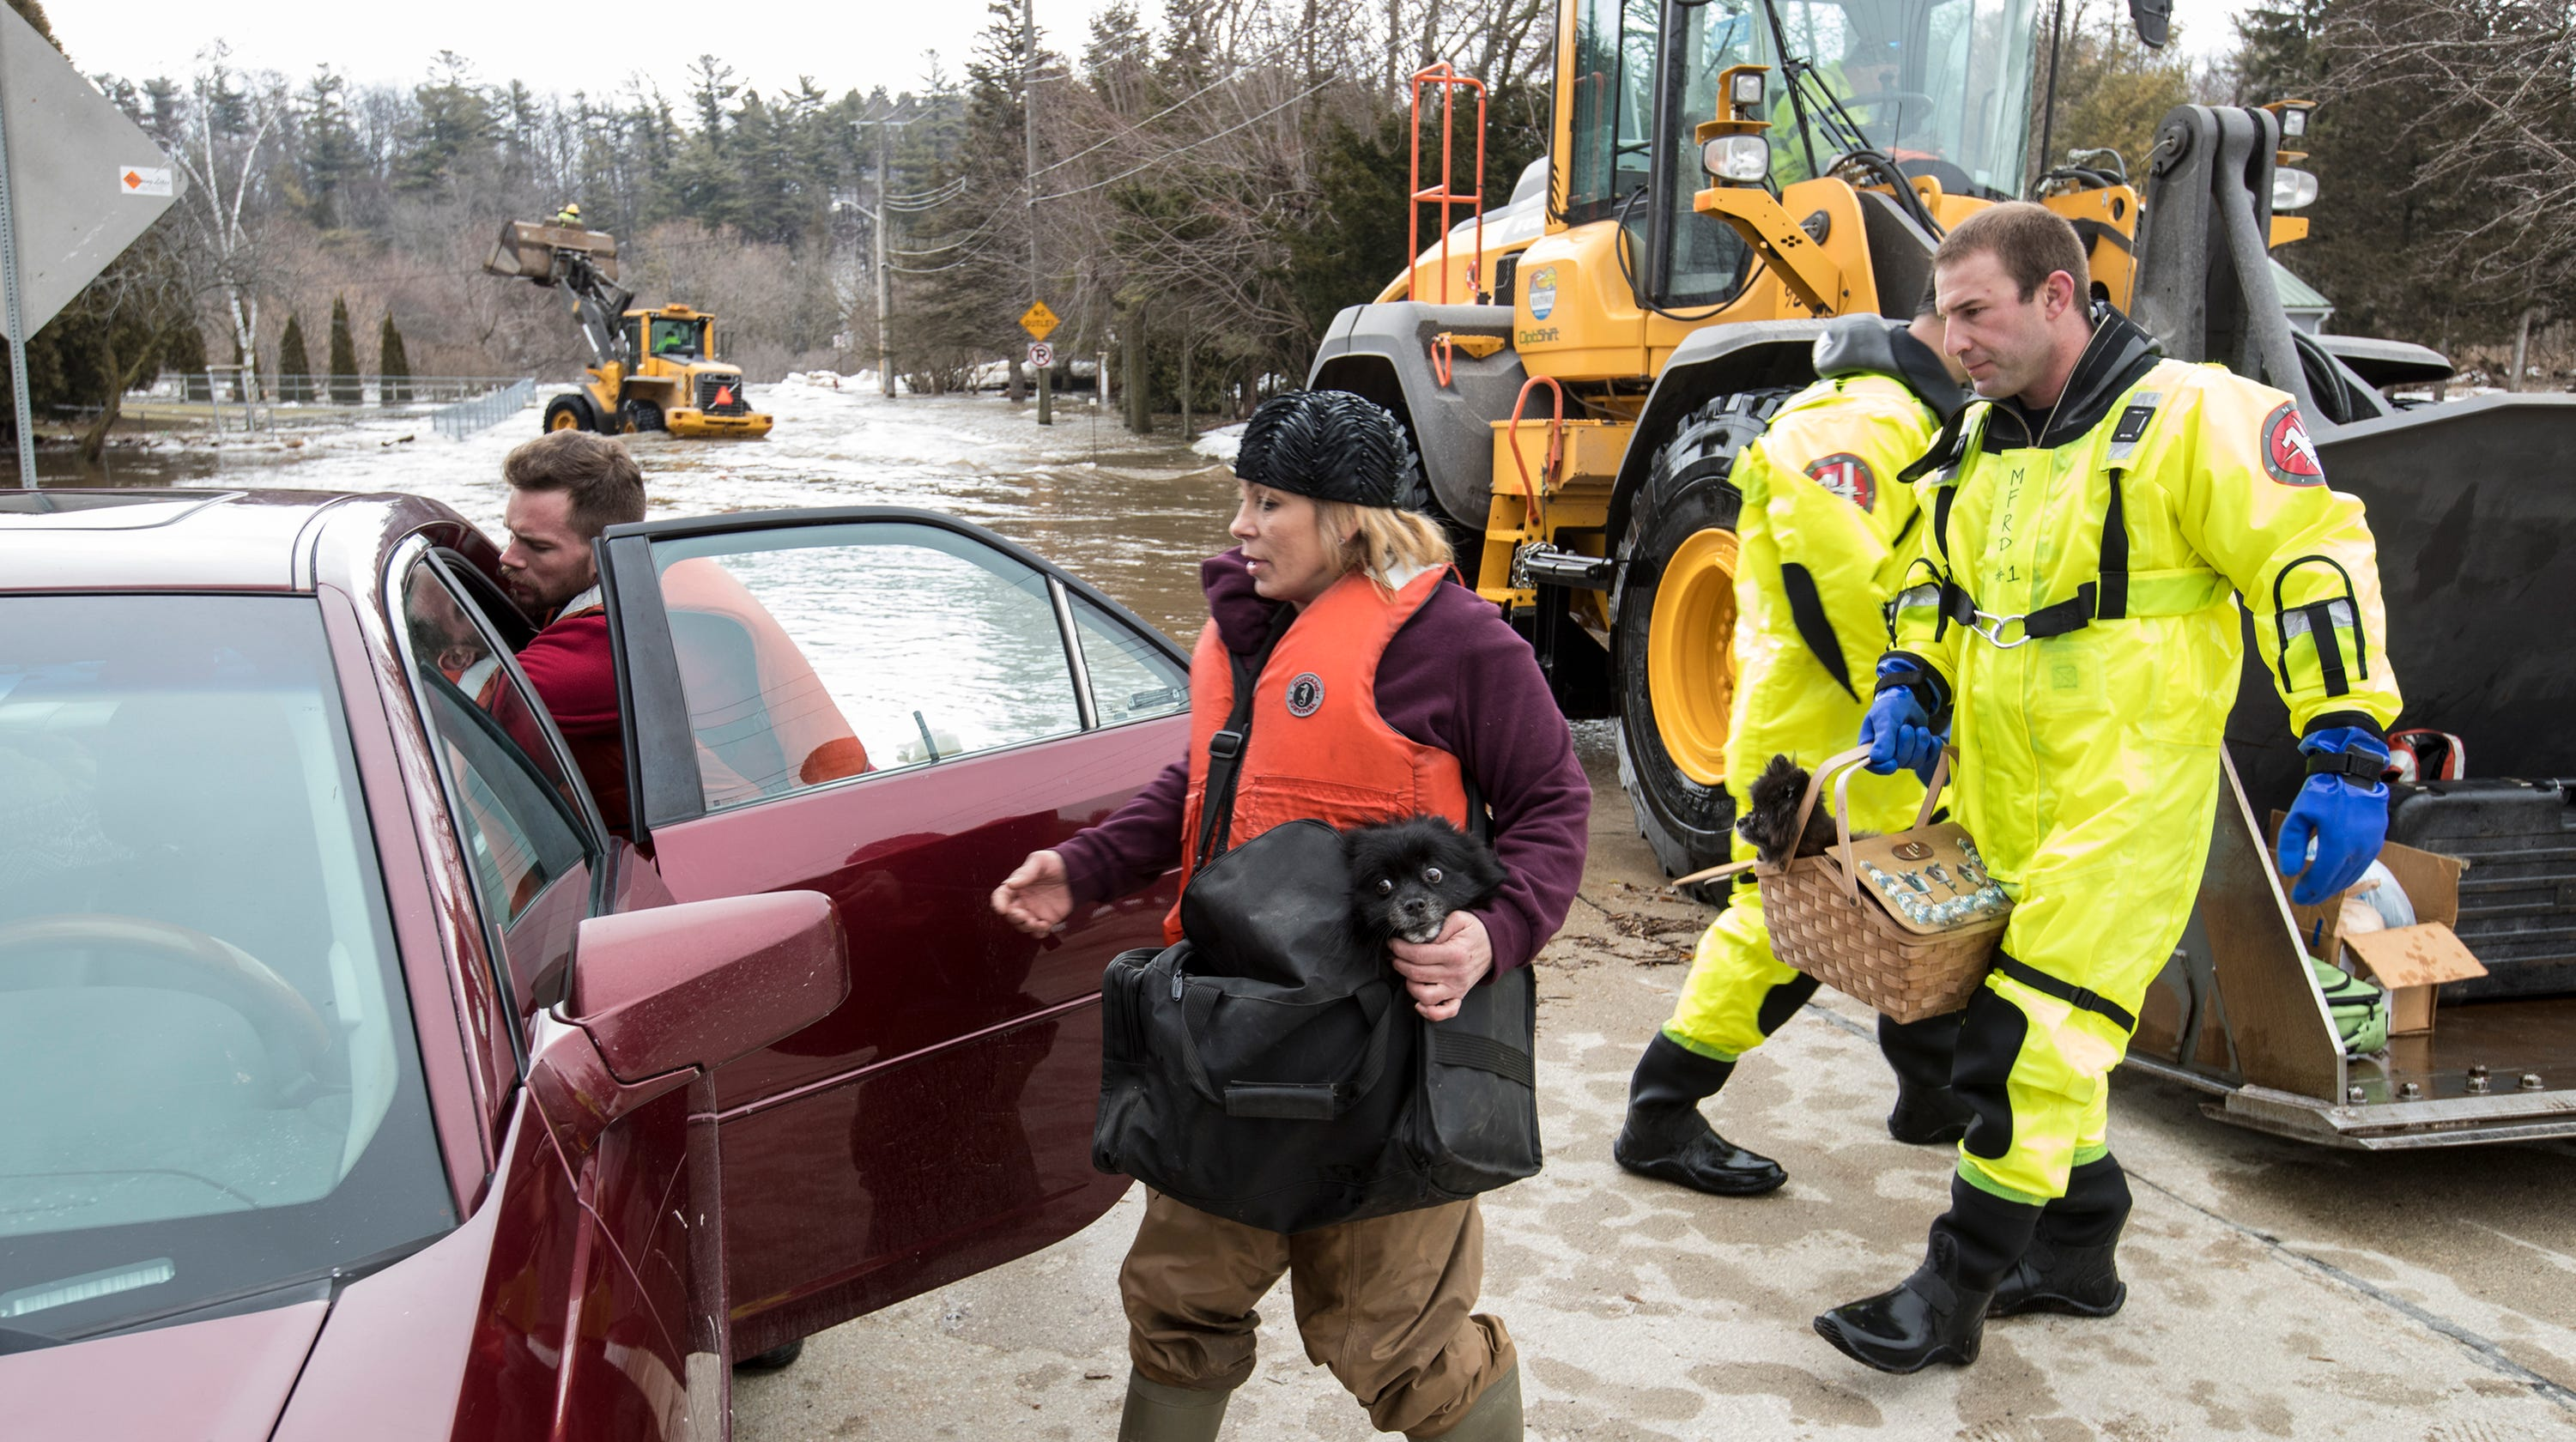 'I lost my Dad's bible.' Wrenching stories from Midwest floods, which have cost at least $3 billion